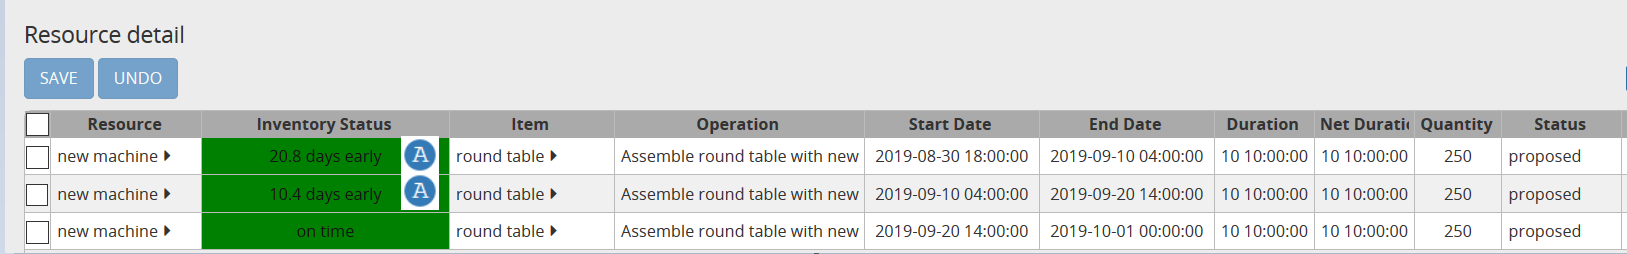 Resource detail for round table